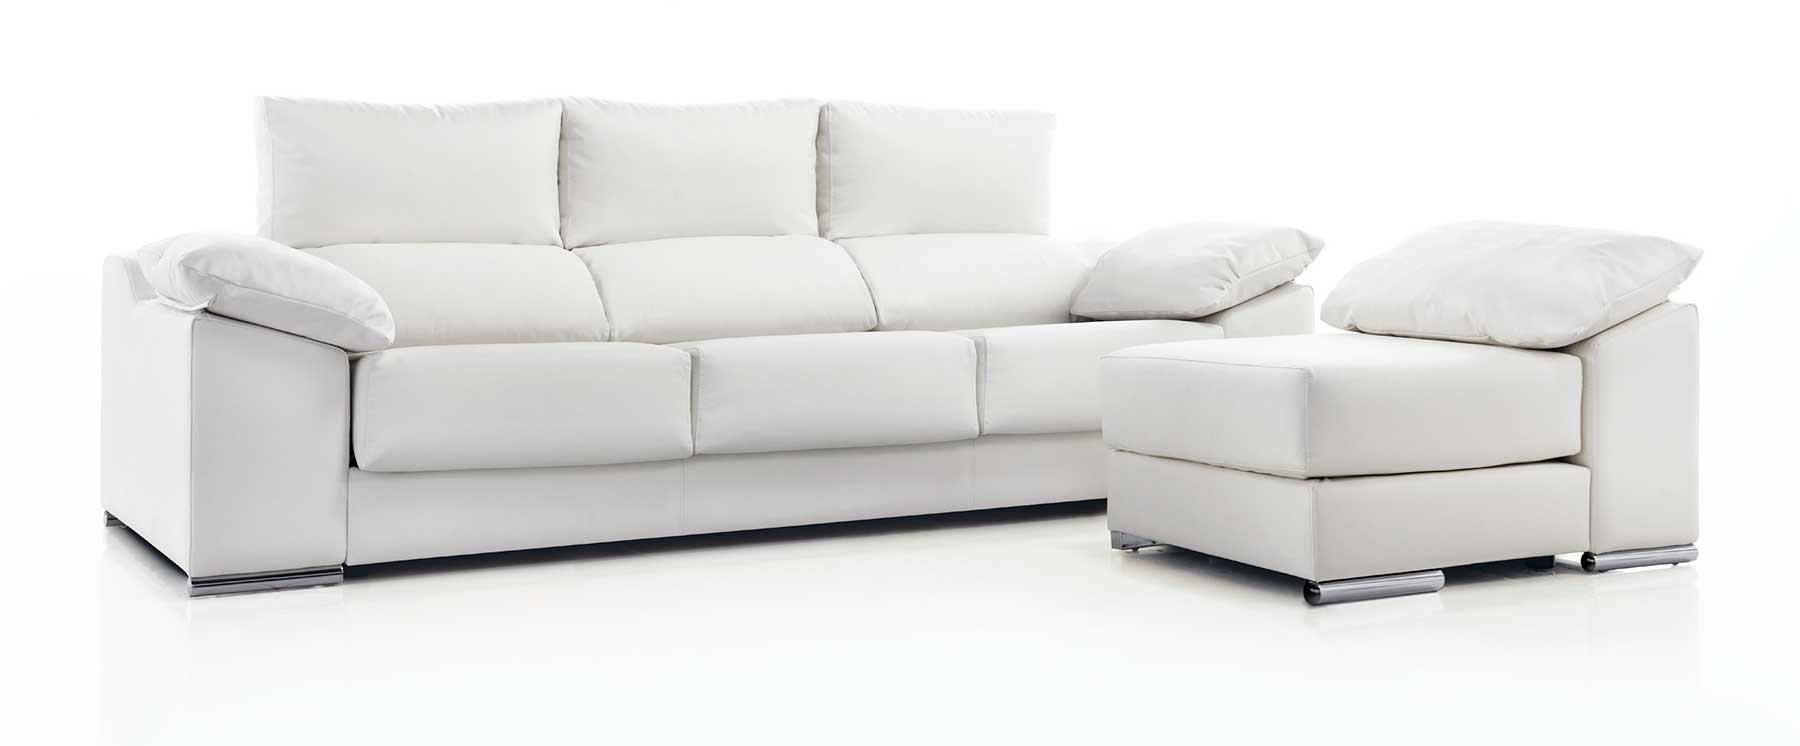 SOFA CHAISELONGUE MOVIBLE BOMBAY - R.G